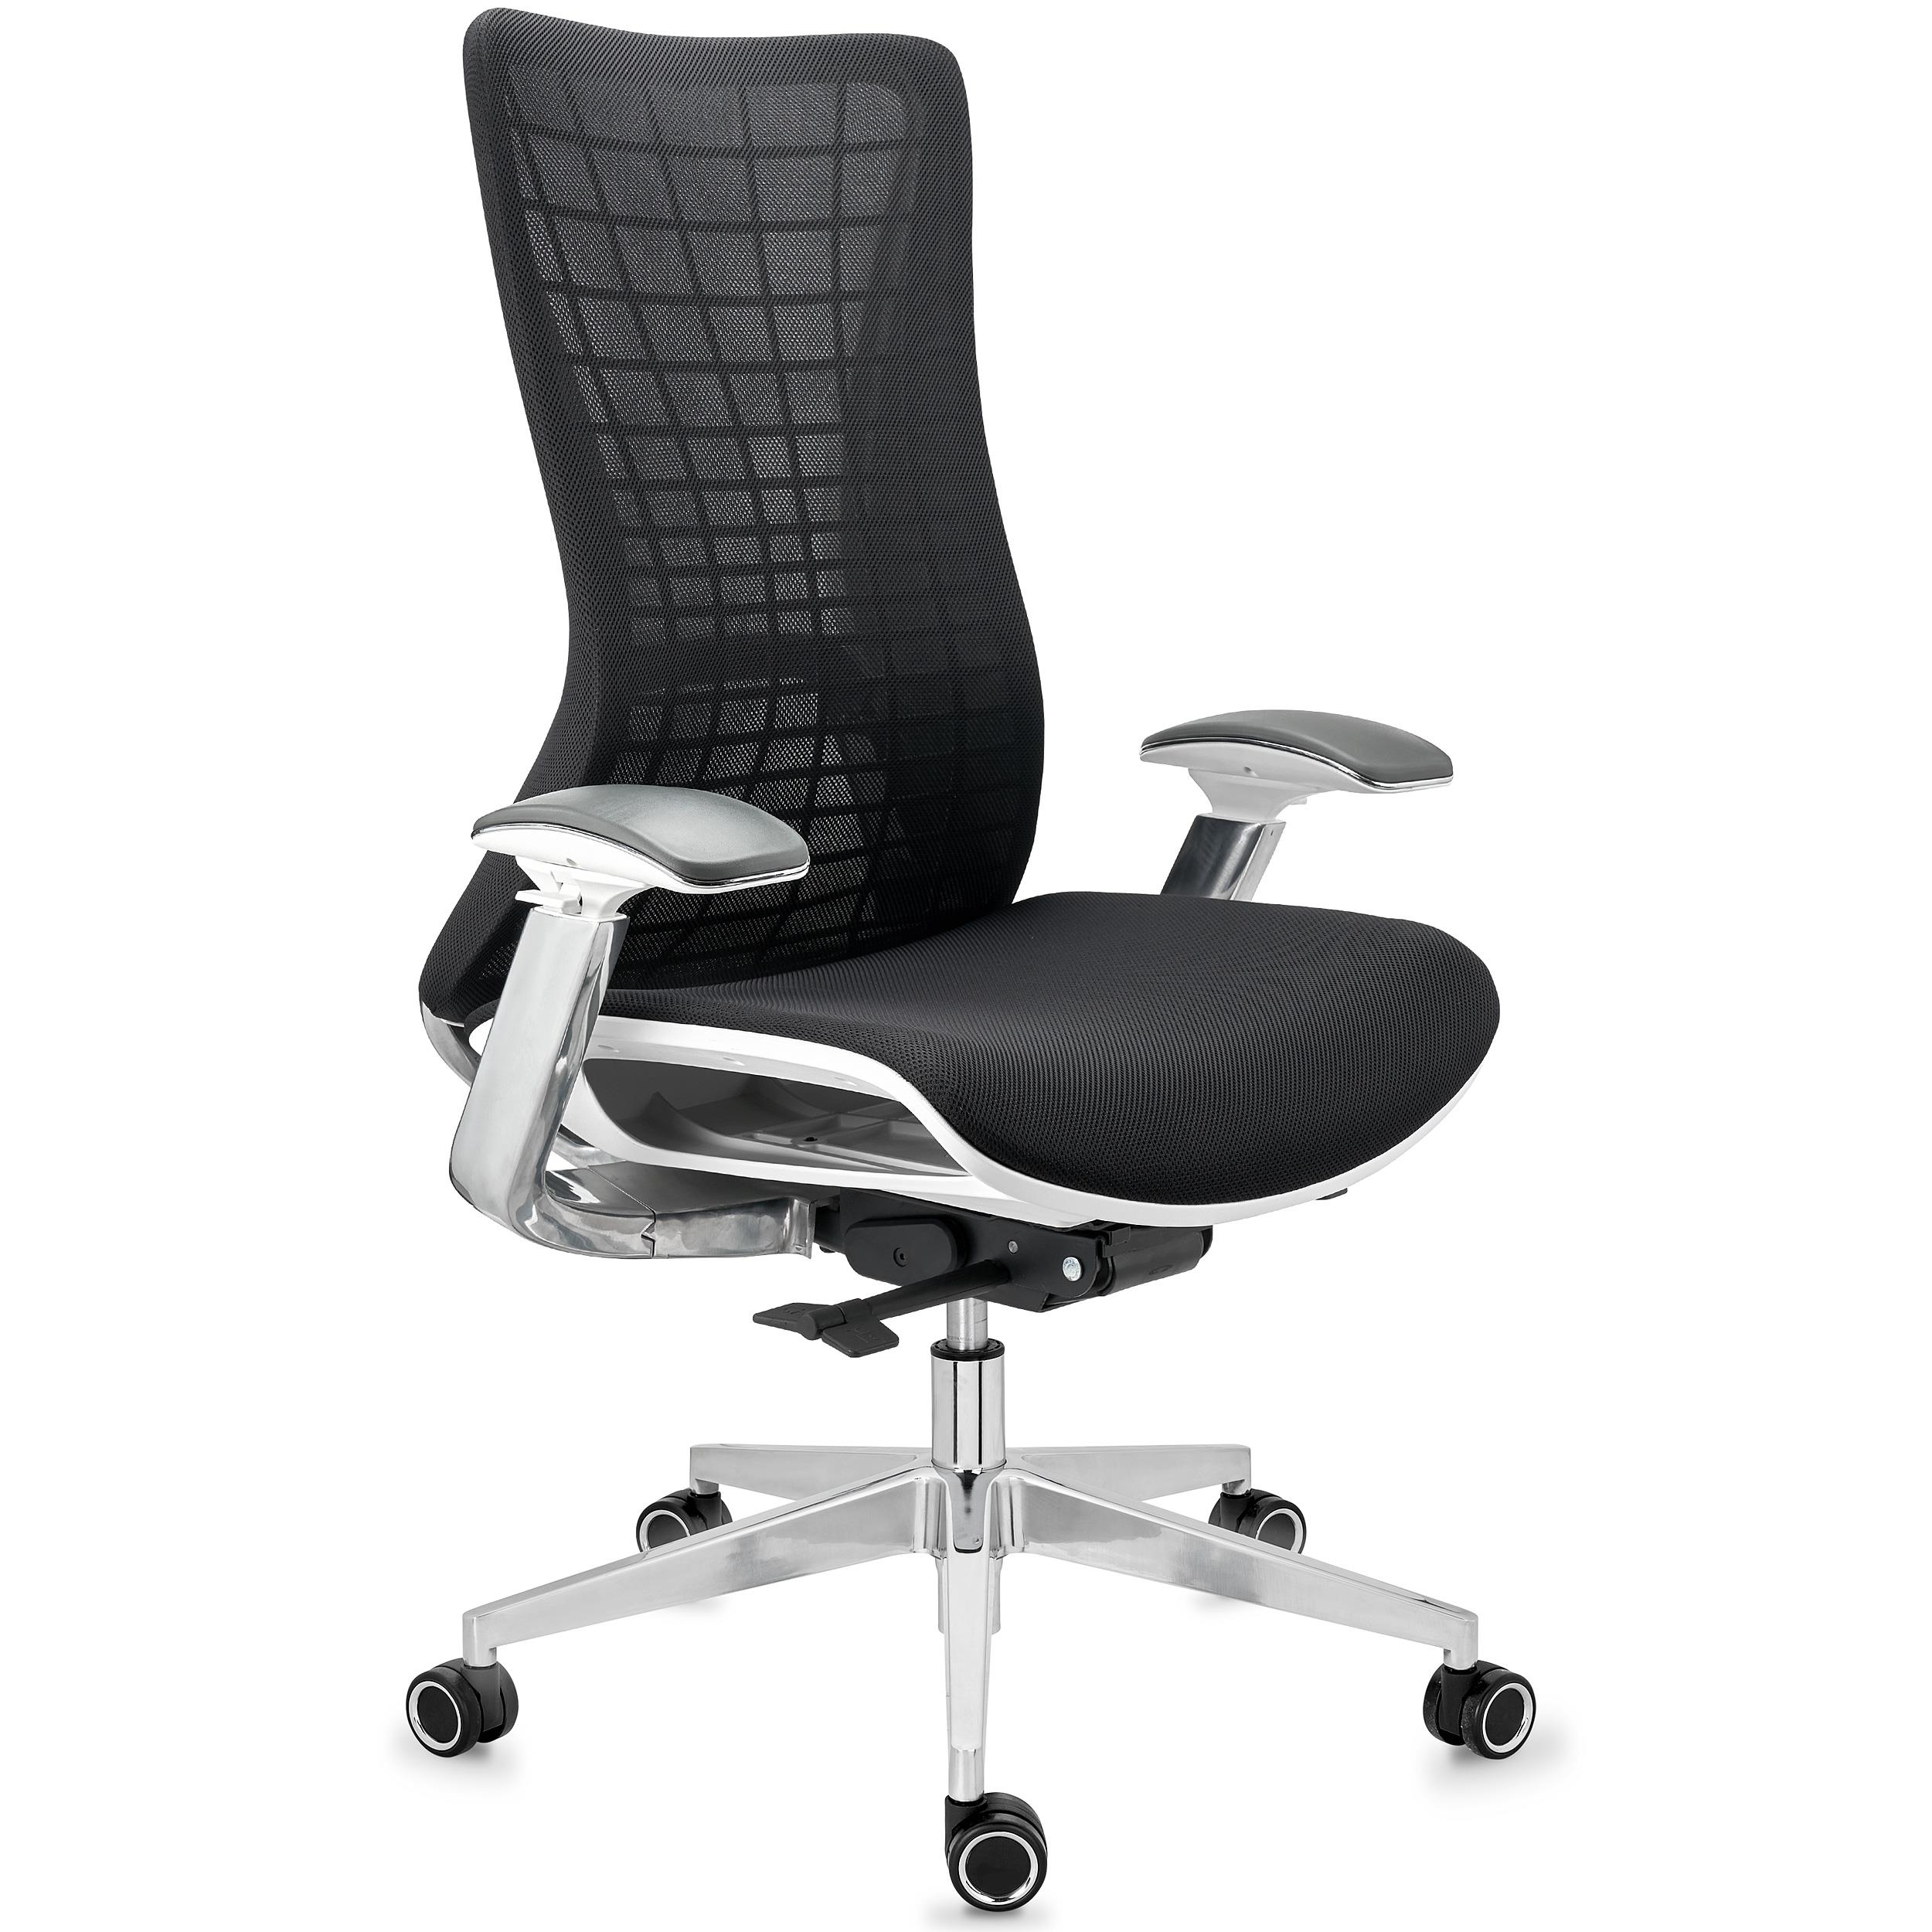 Chaise Ergonomique ENERGY, Design Unique, Excellente Qualité, en Maille, Noir